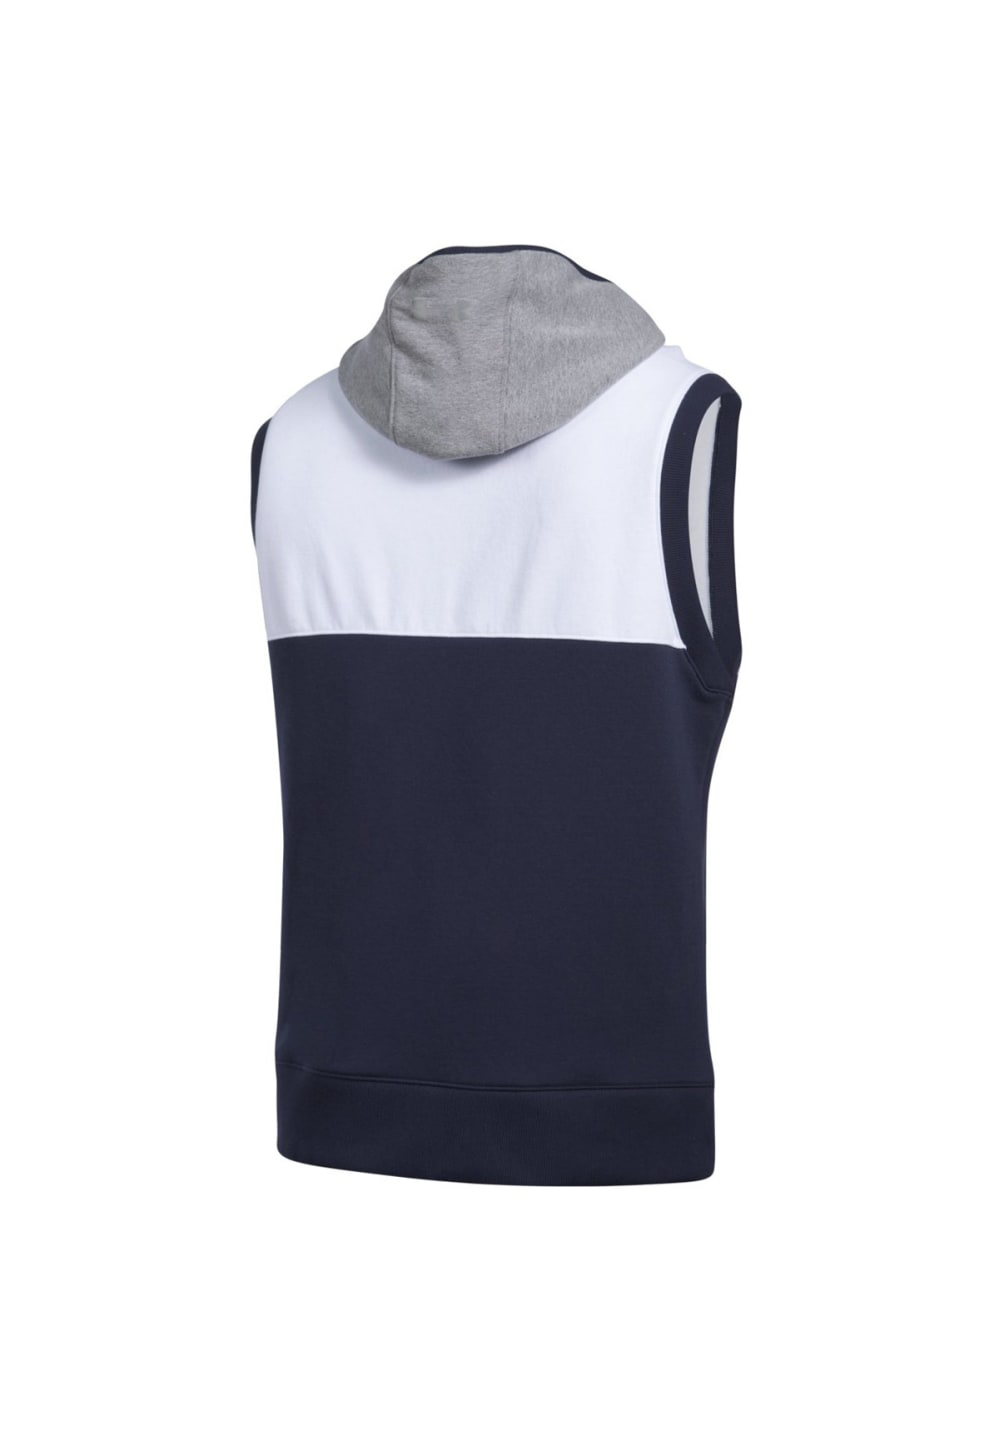 faa13a9b30d9bc Next. -45%. This product is currently out of stock. Under Armour. Threadborne  Sleeveless Pullover - Fitness tops for Men